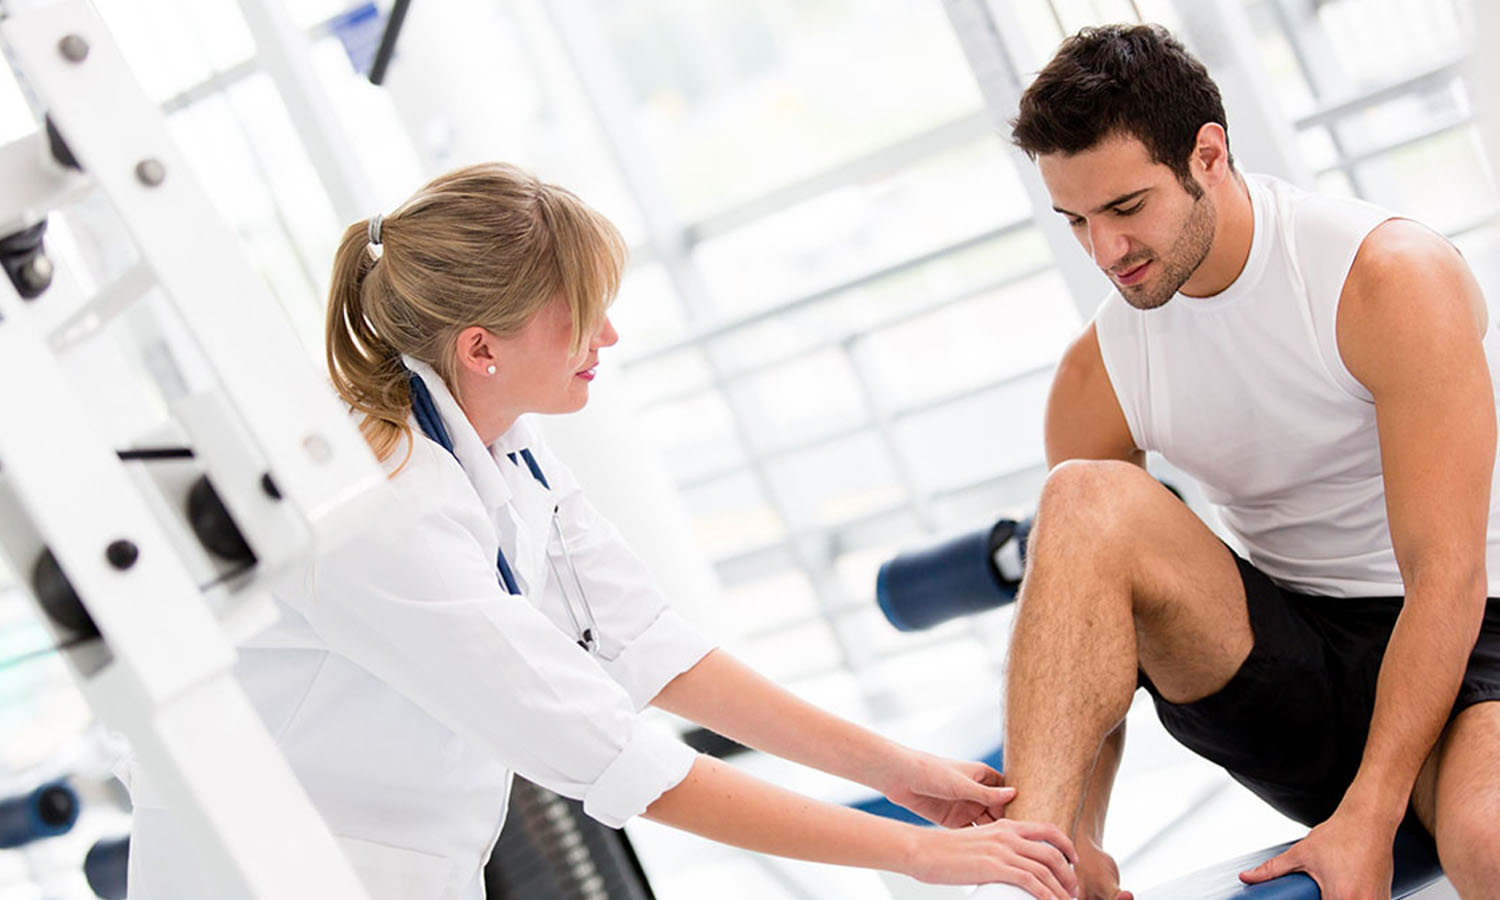 11 Reasons Why Athletes Should See a Sports Medicine Doctor